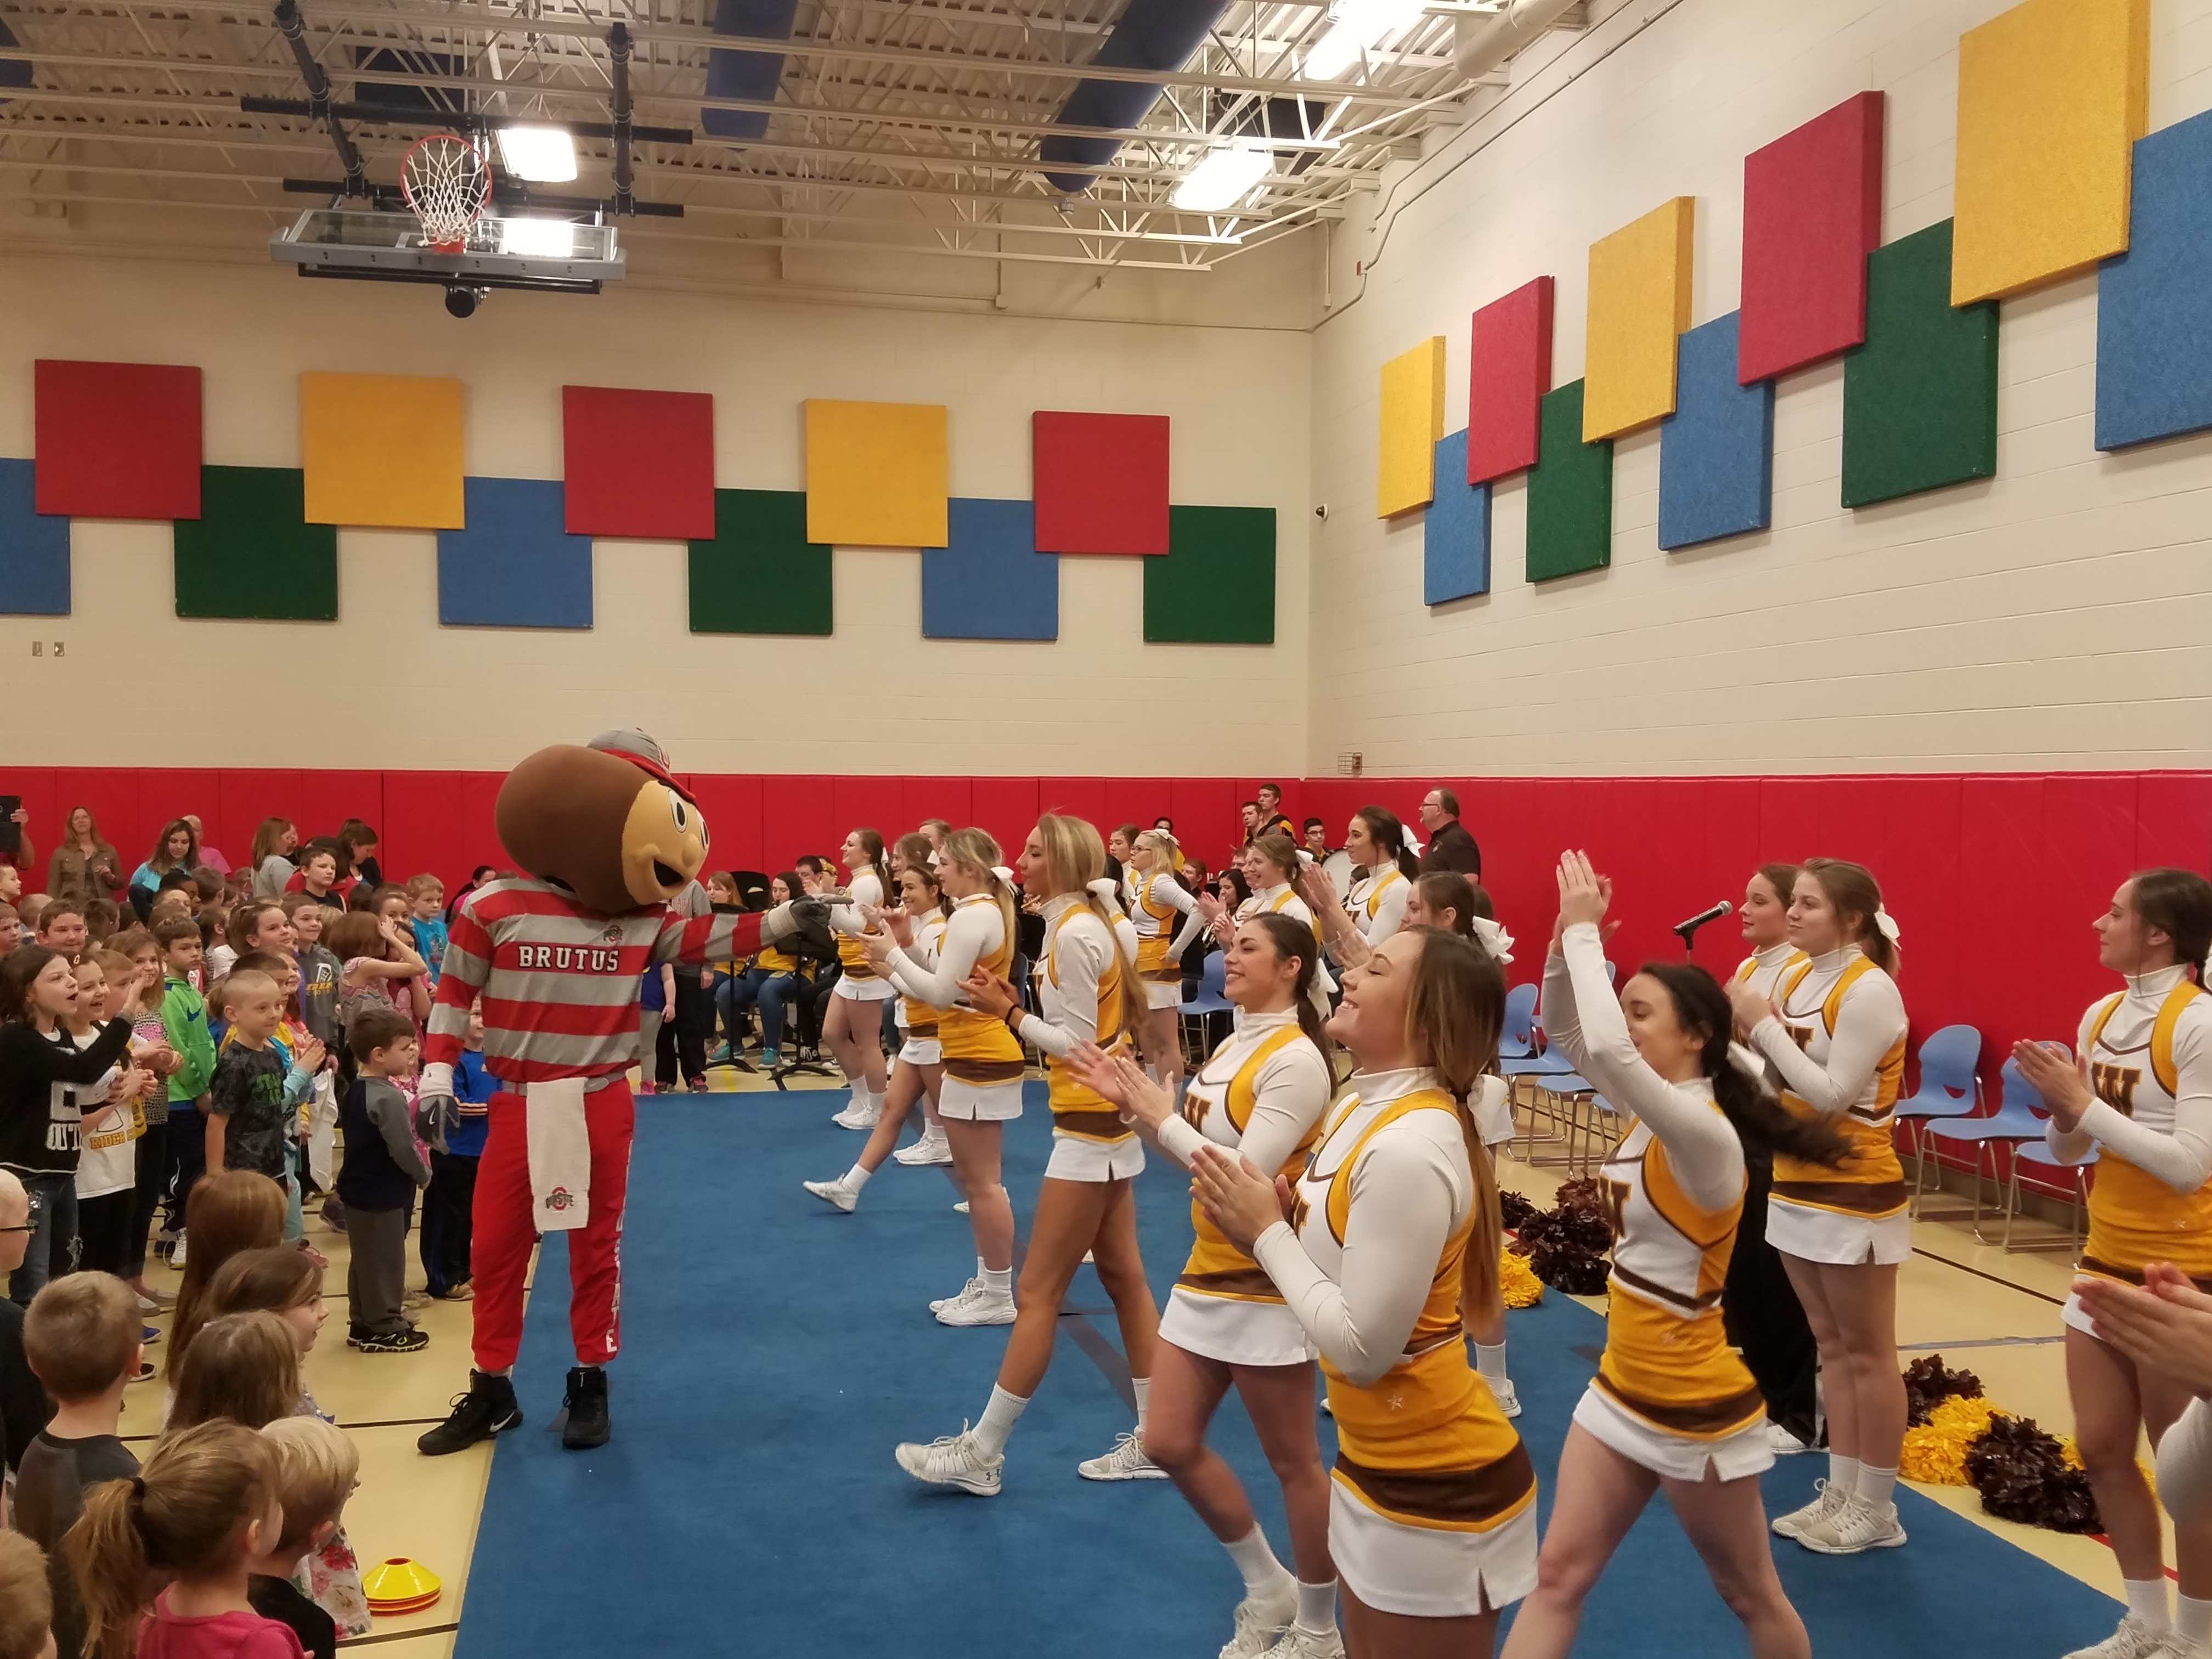 Brutus Buckeye was joined by cheerleaders from West Jefferson High School at Norwood Elementary in West Jefferson today for a school assembly to celebrate Norwood receiving a $20,000 PLAYMAKERS grant from UnitedHealthcare. PLAYMAKERS, created by UnitedHealthcare with support from Ohio State IMG Sports Marketing and 97.1 The Fan, promotes sports, physical activity and active play at elementary schools across Ohio (Photo courtesy of UnitedHealthcare).